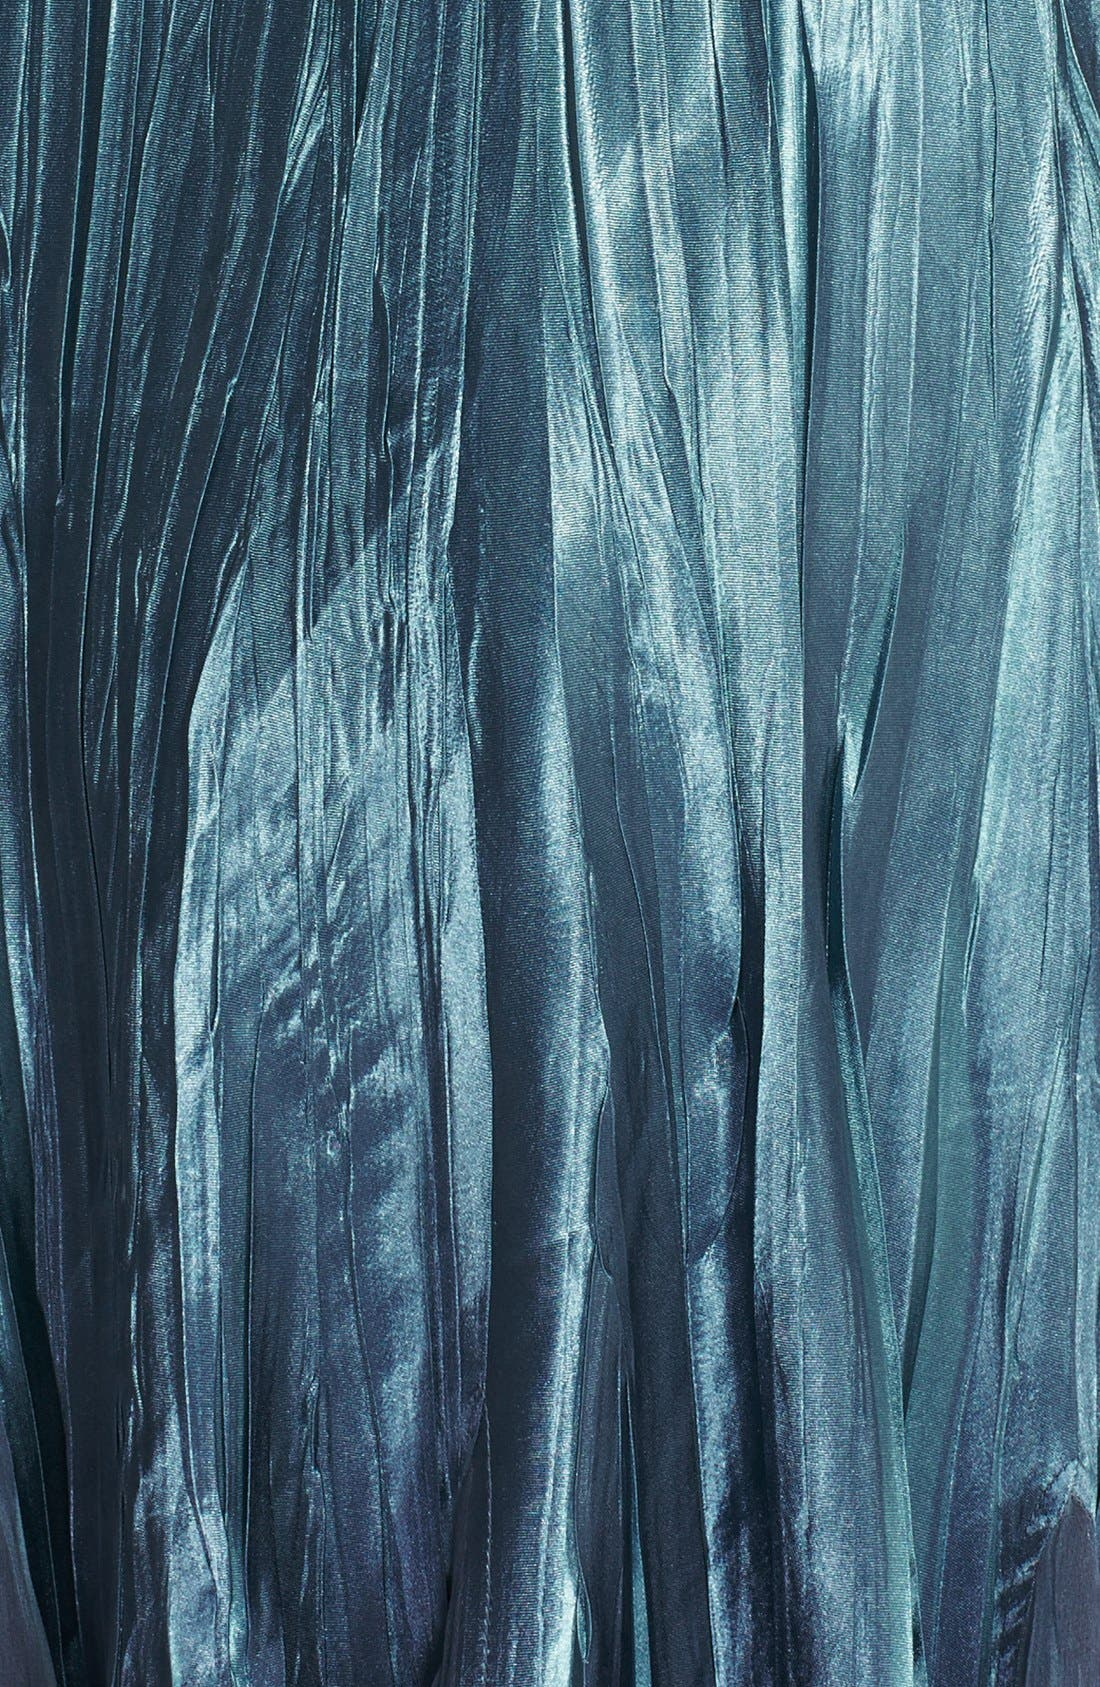 Embellished Pleat Mixed Media Dress with Jacket,                             Alternate thumbnail 7, color,                             SILVER BLUE OMBRE